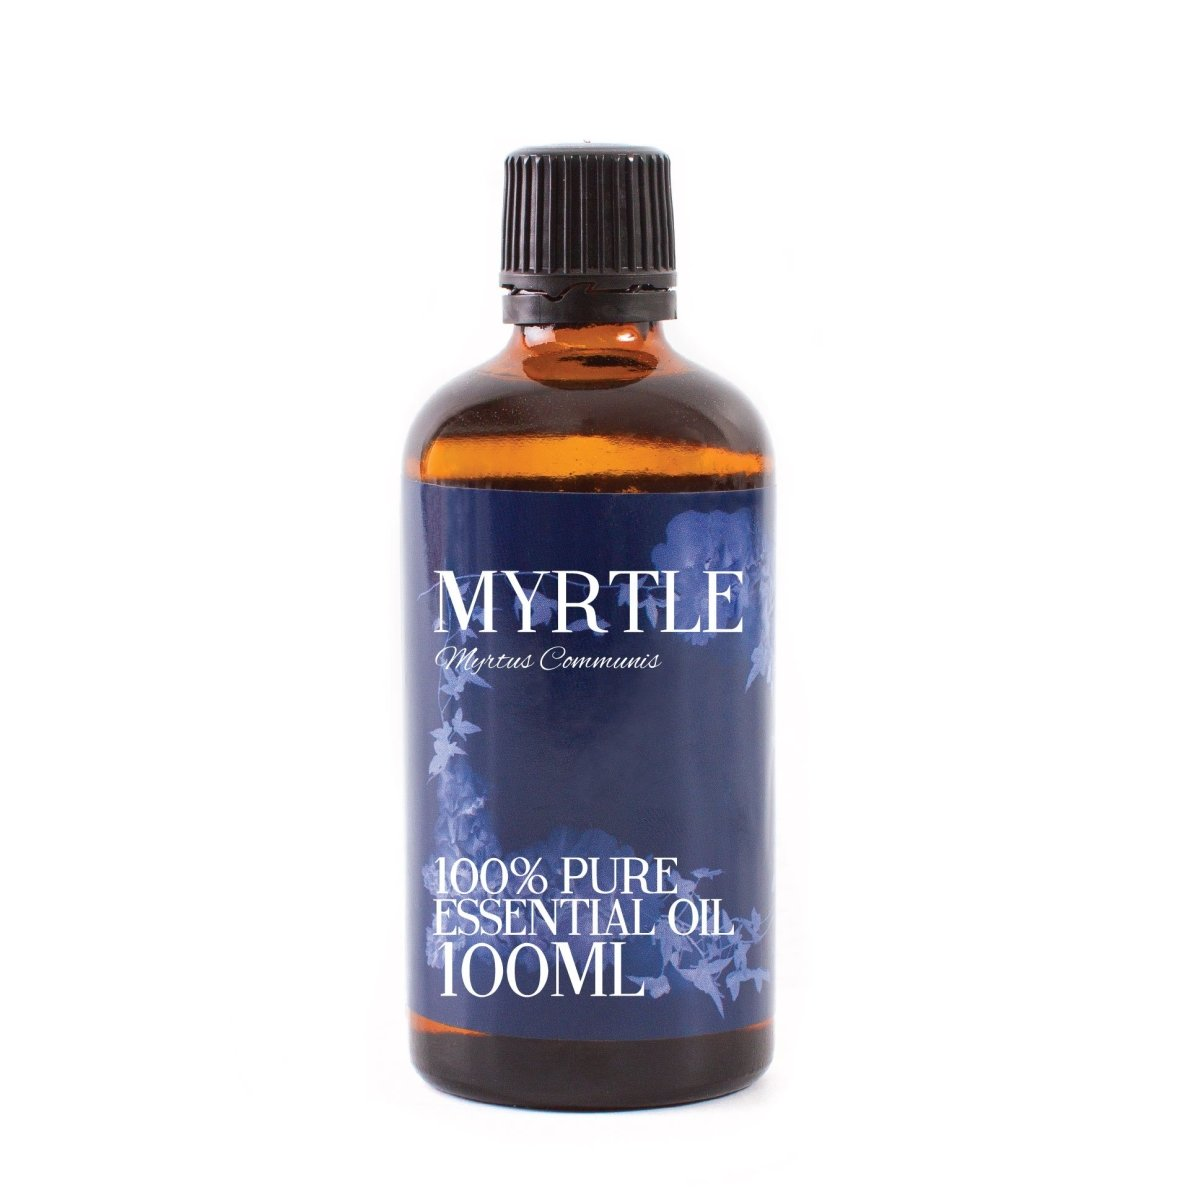 Myrtle Essential Oil - Mystic Moments UK